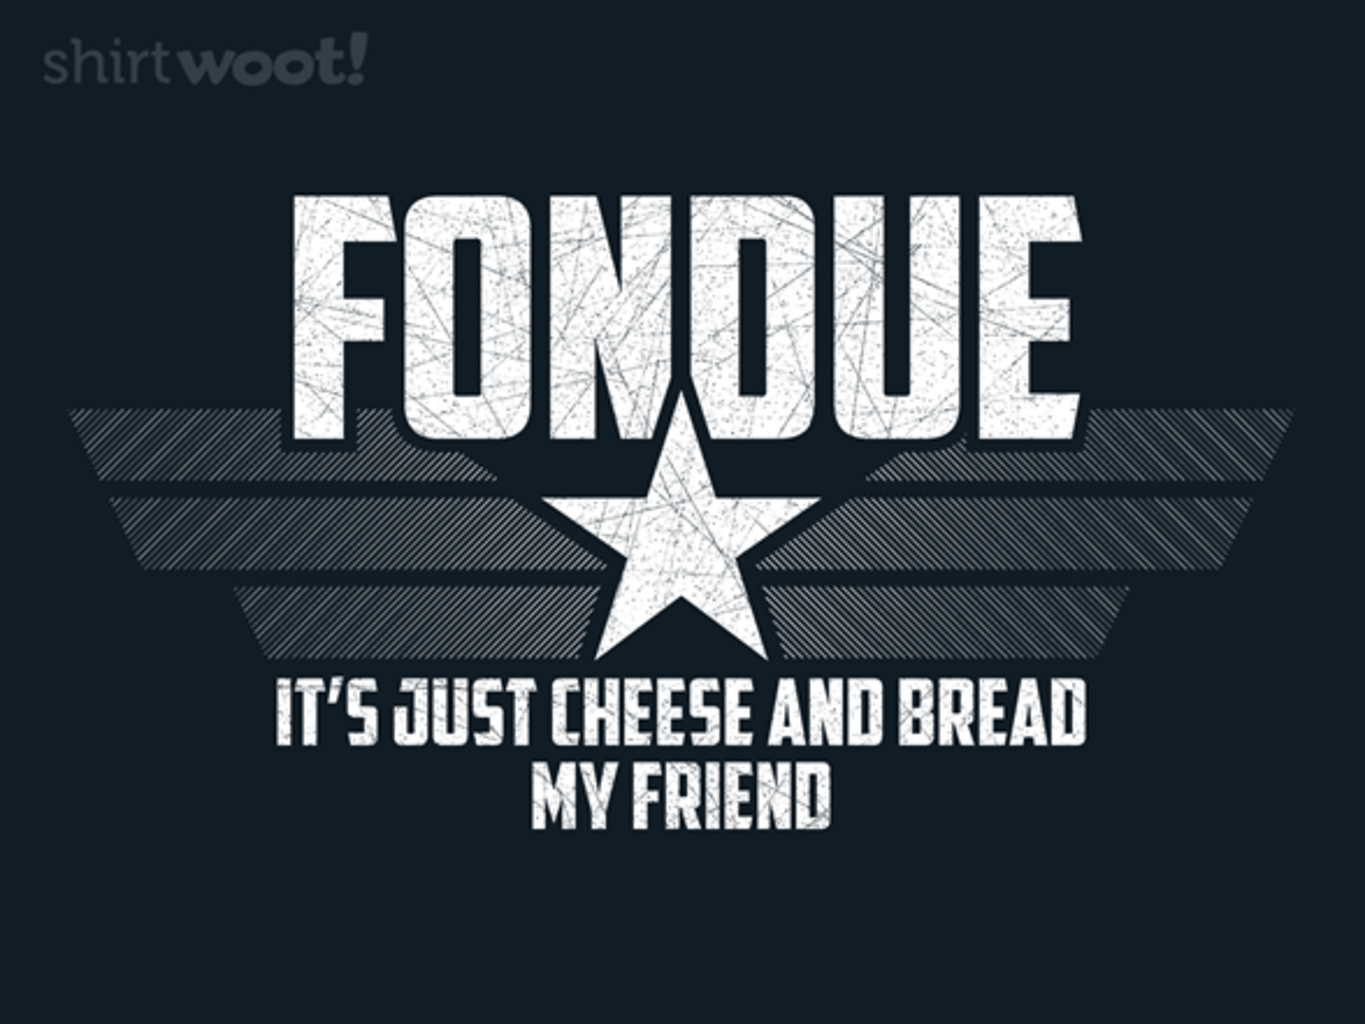 Woot!: Just Cheese And Bread